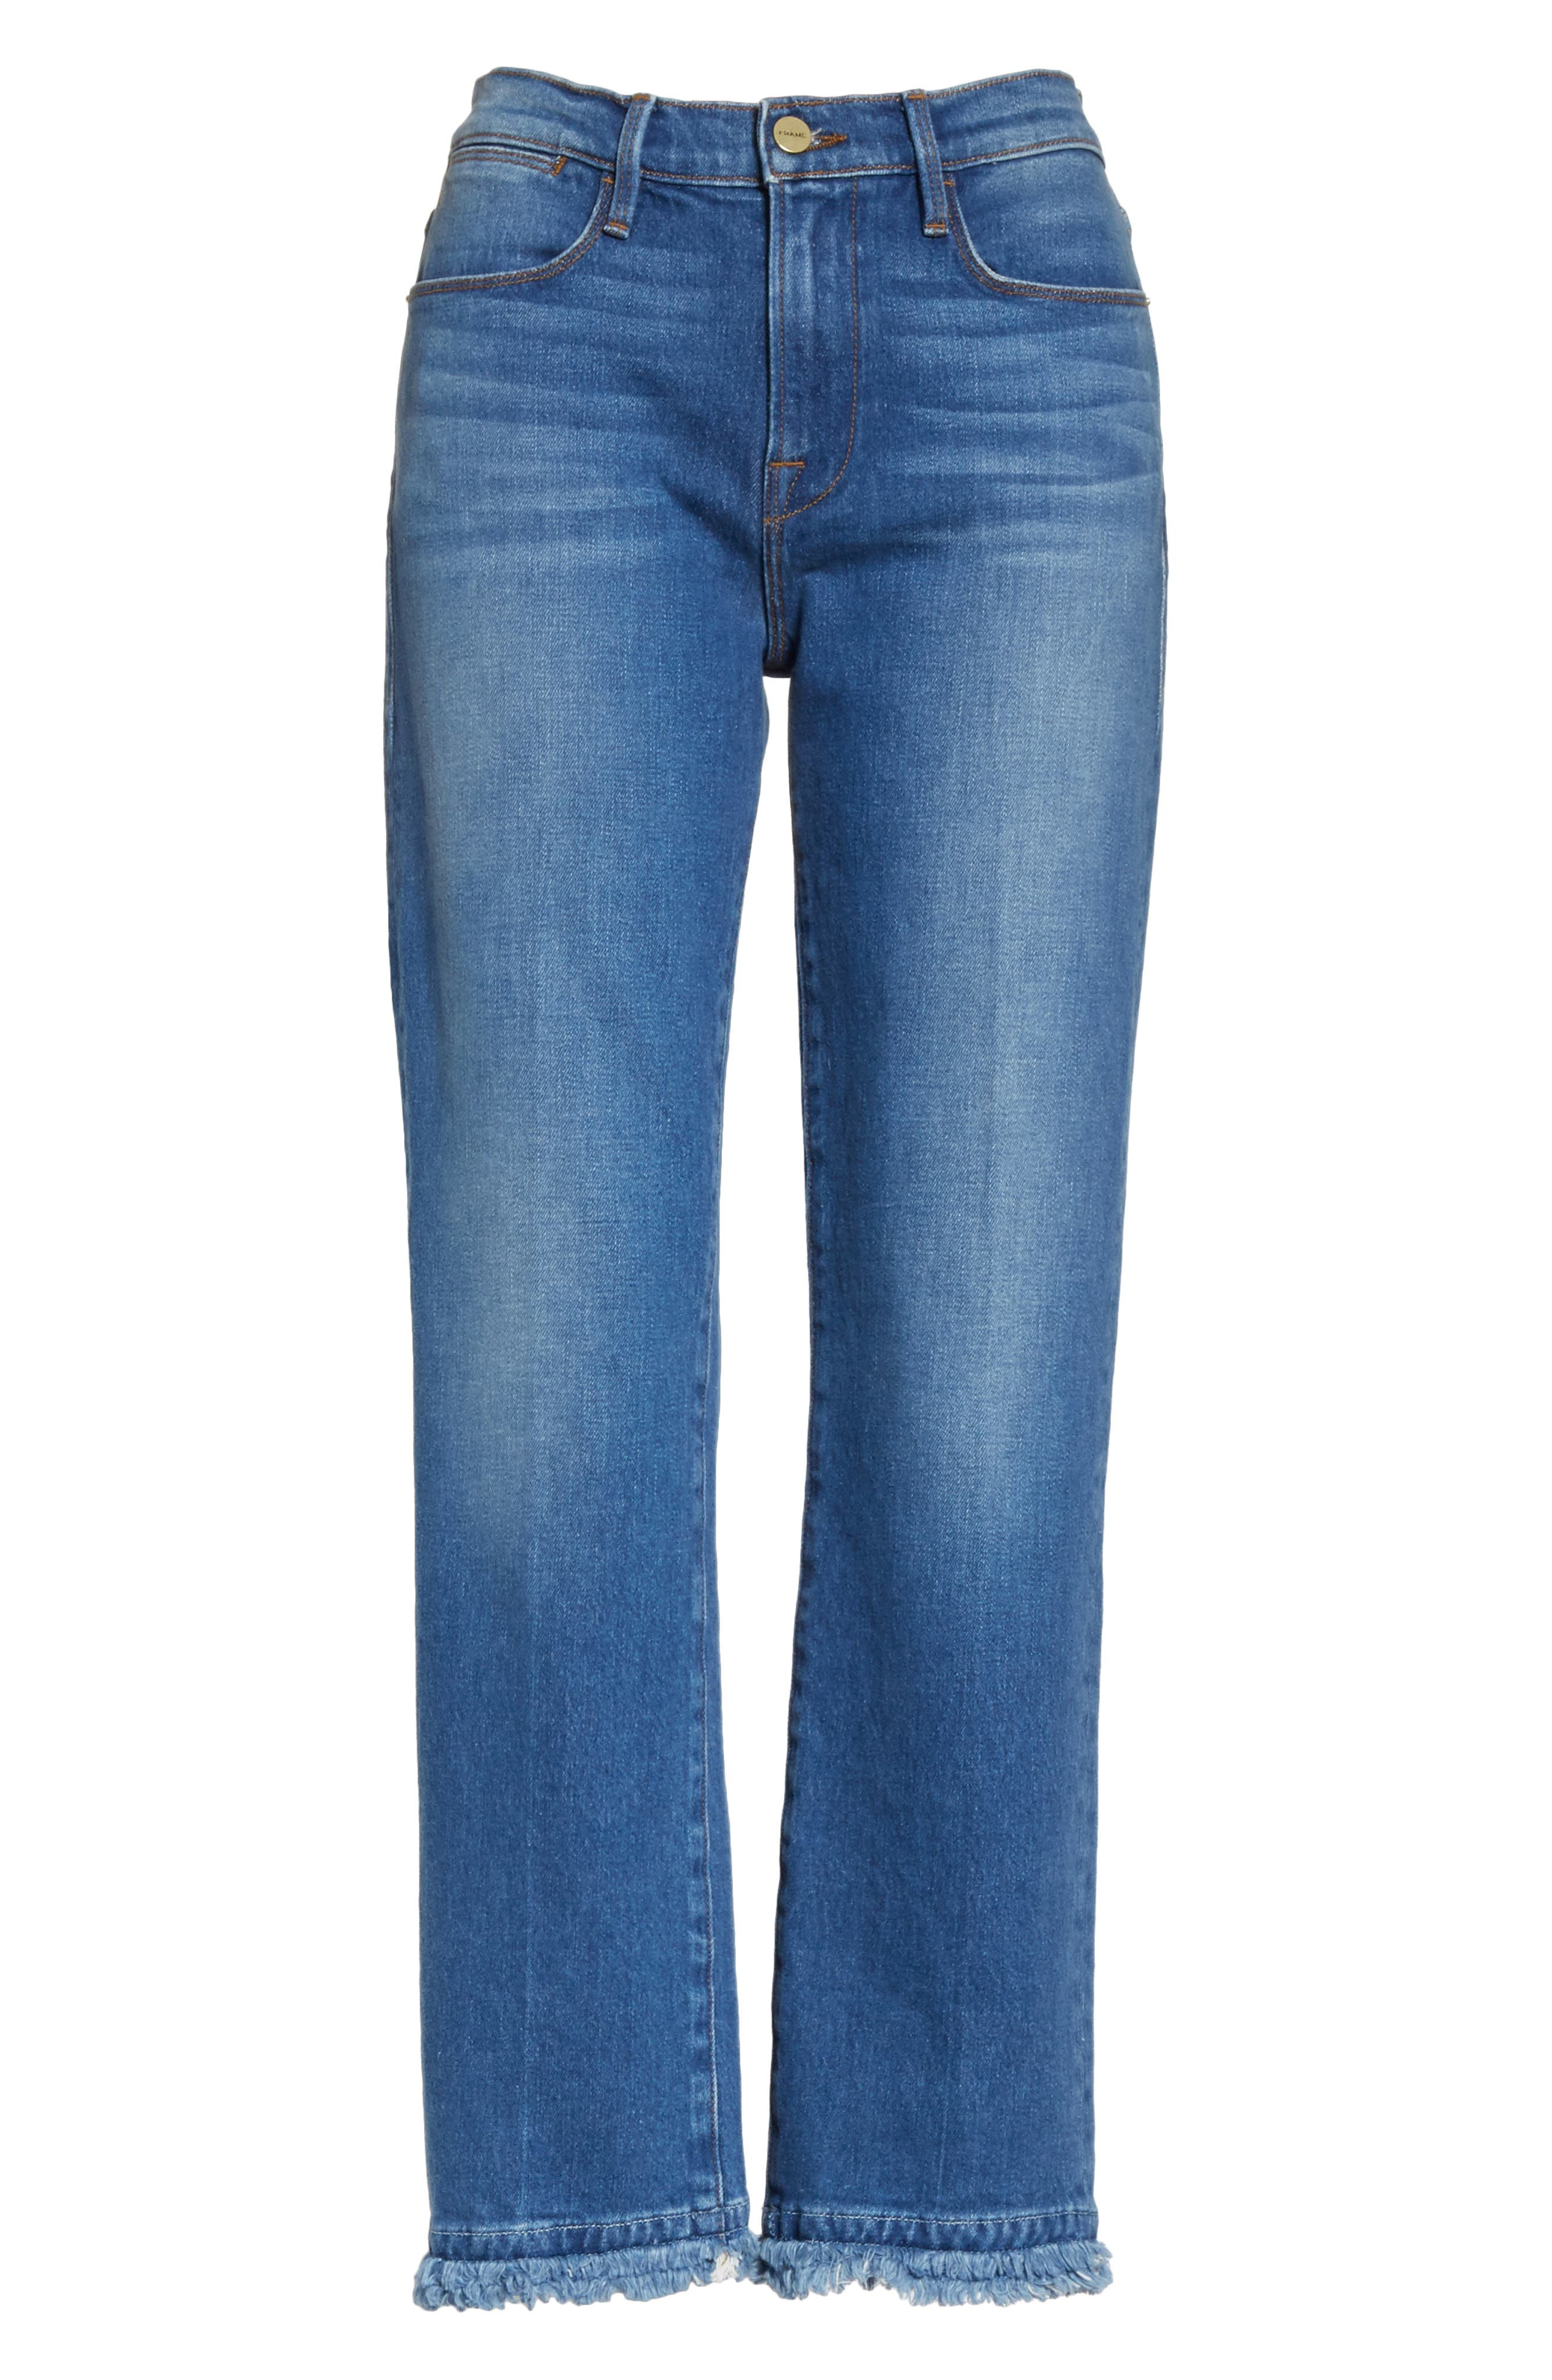 Le High Double Raw Edge High Waist Jeans,                             Alternate thumbnail 7, color,                             Whitway